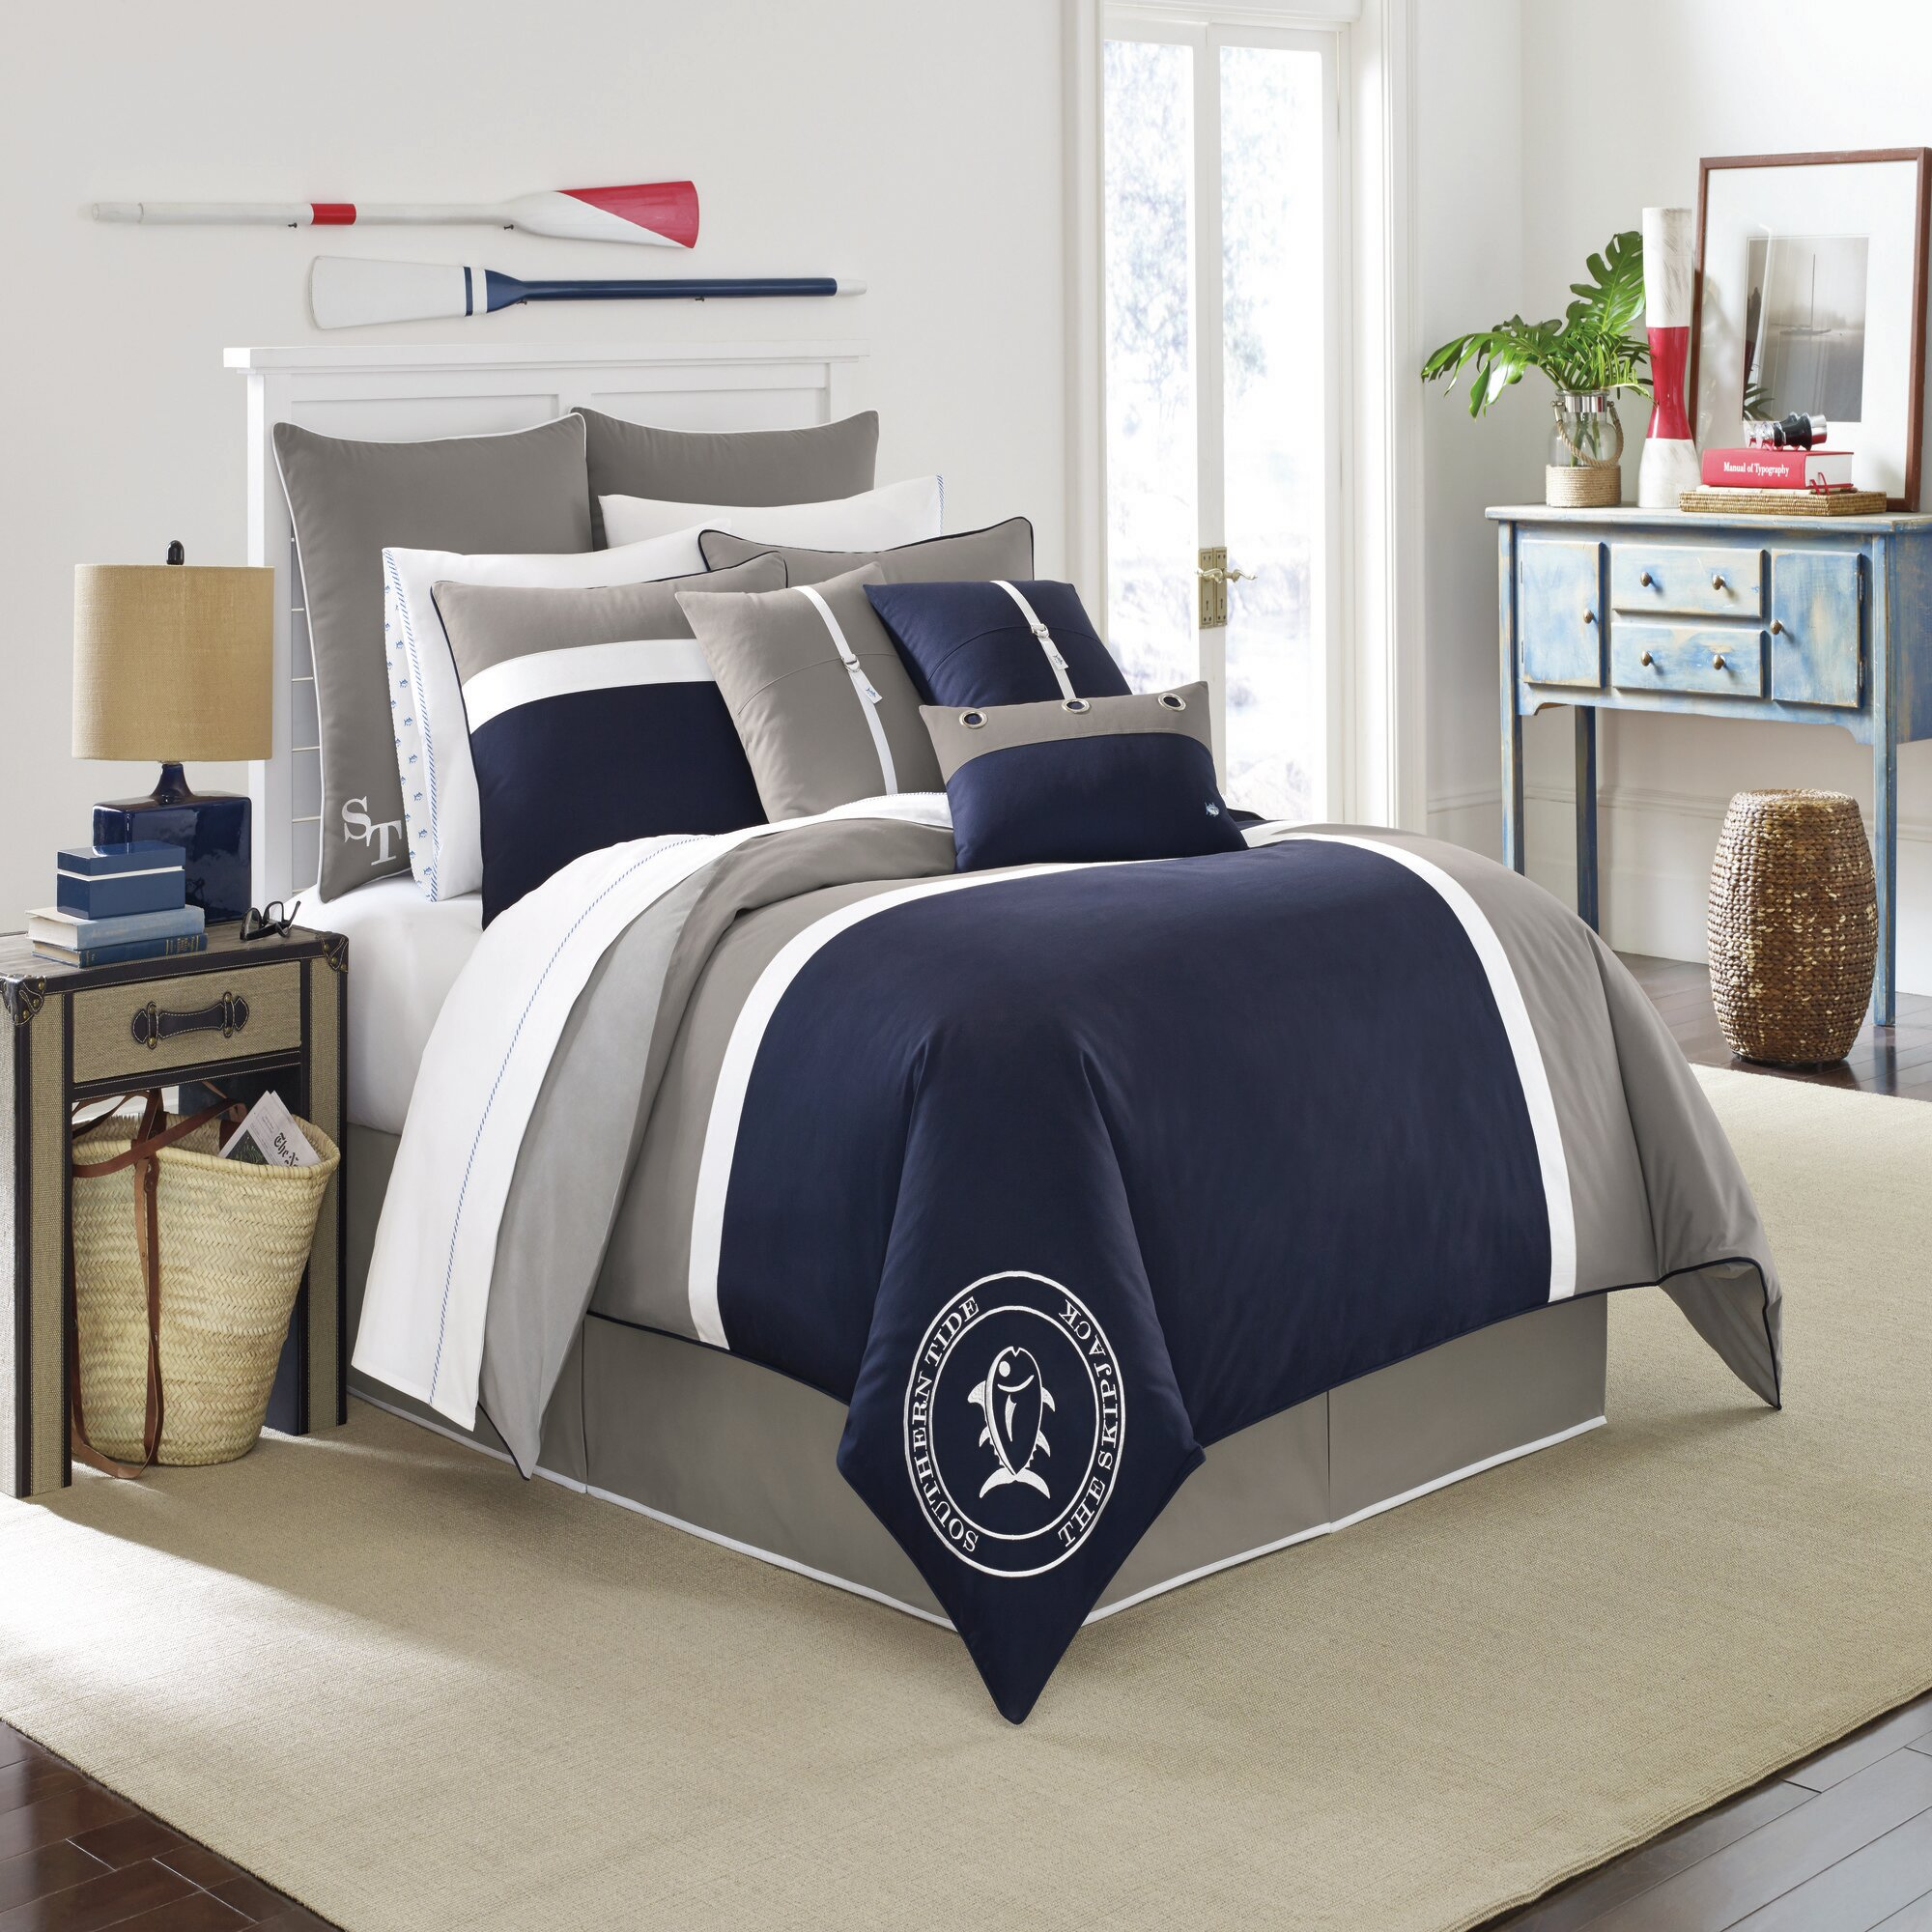 royal solid pulitzer insert backpack marsh case of iphone southern tradition skipjack full comforter pillow lilly size tide down sweatshirt sale bedding